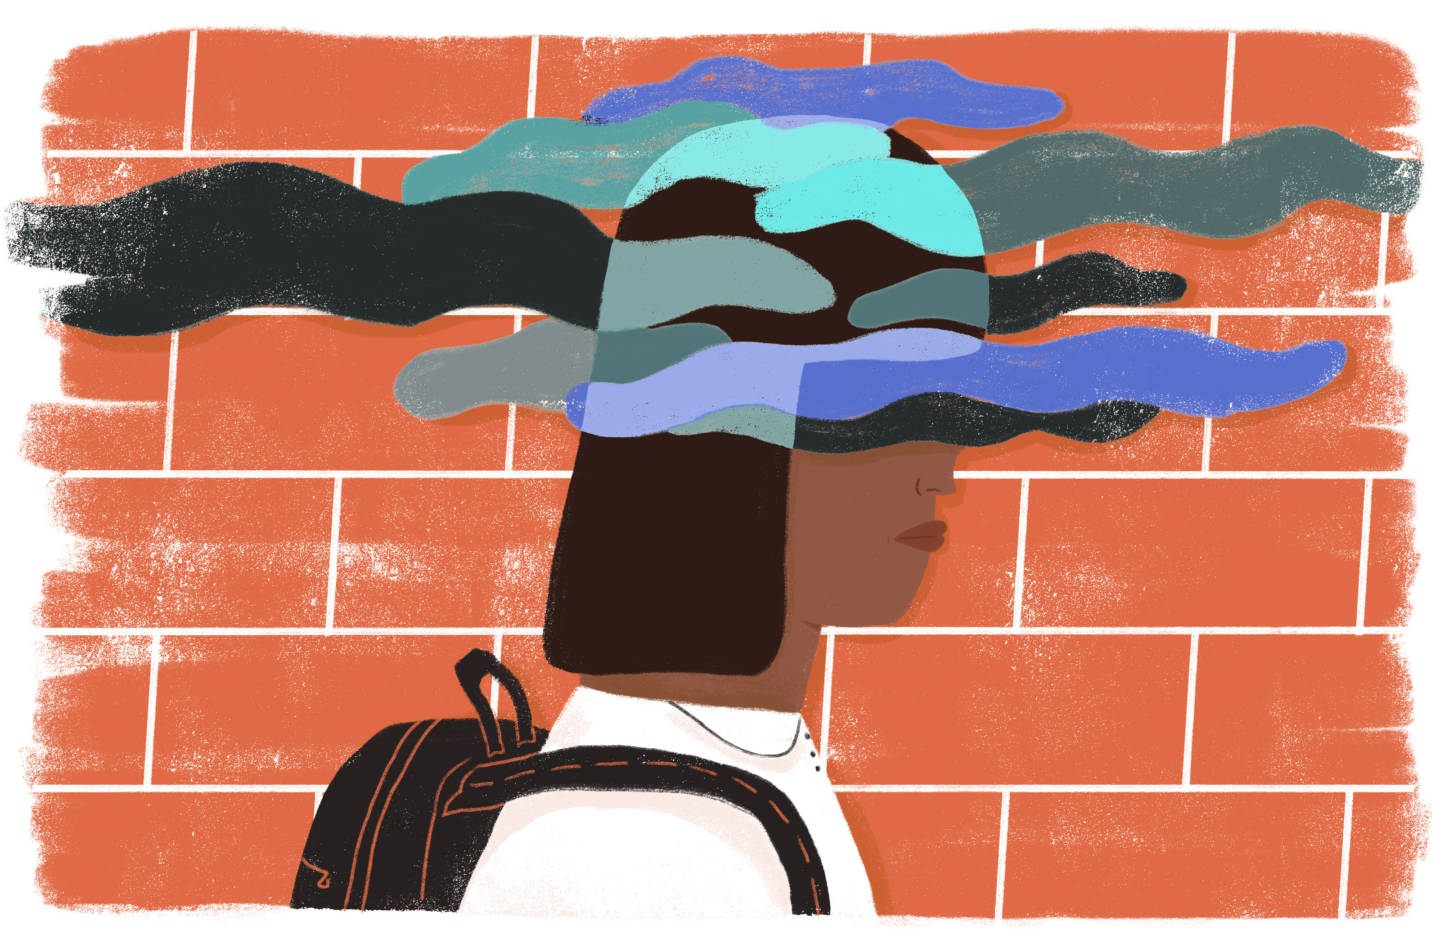 How Can Middle Schools Best Organize to Help Young Adolescents Thrive?